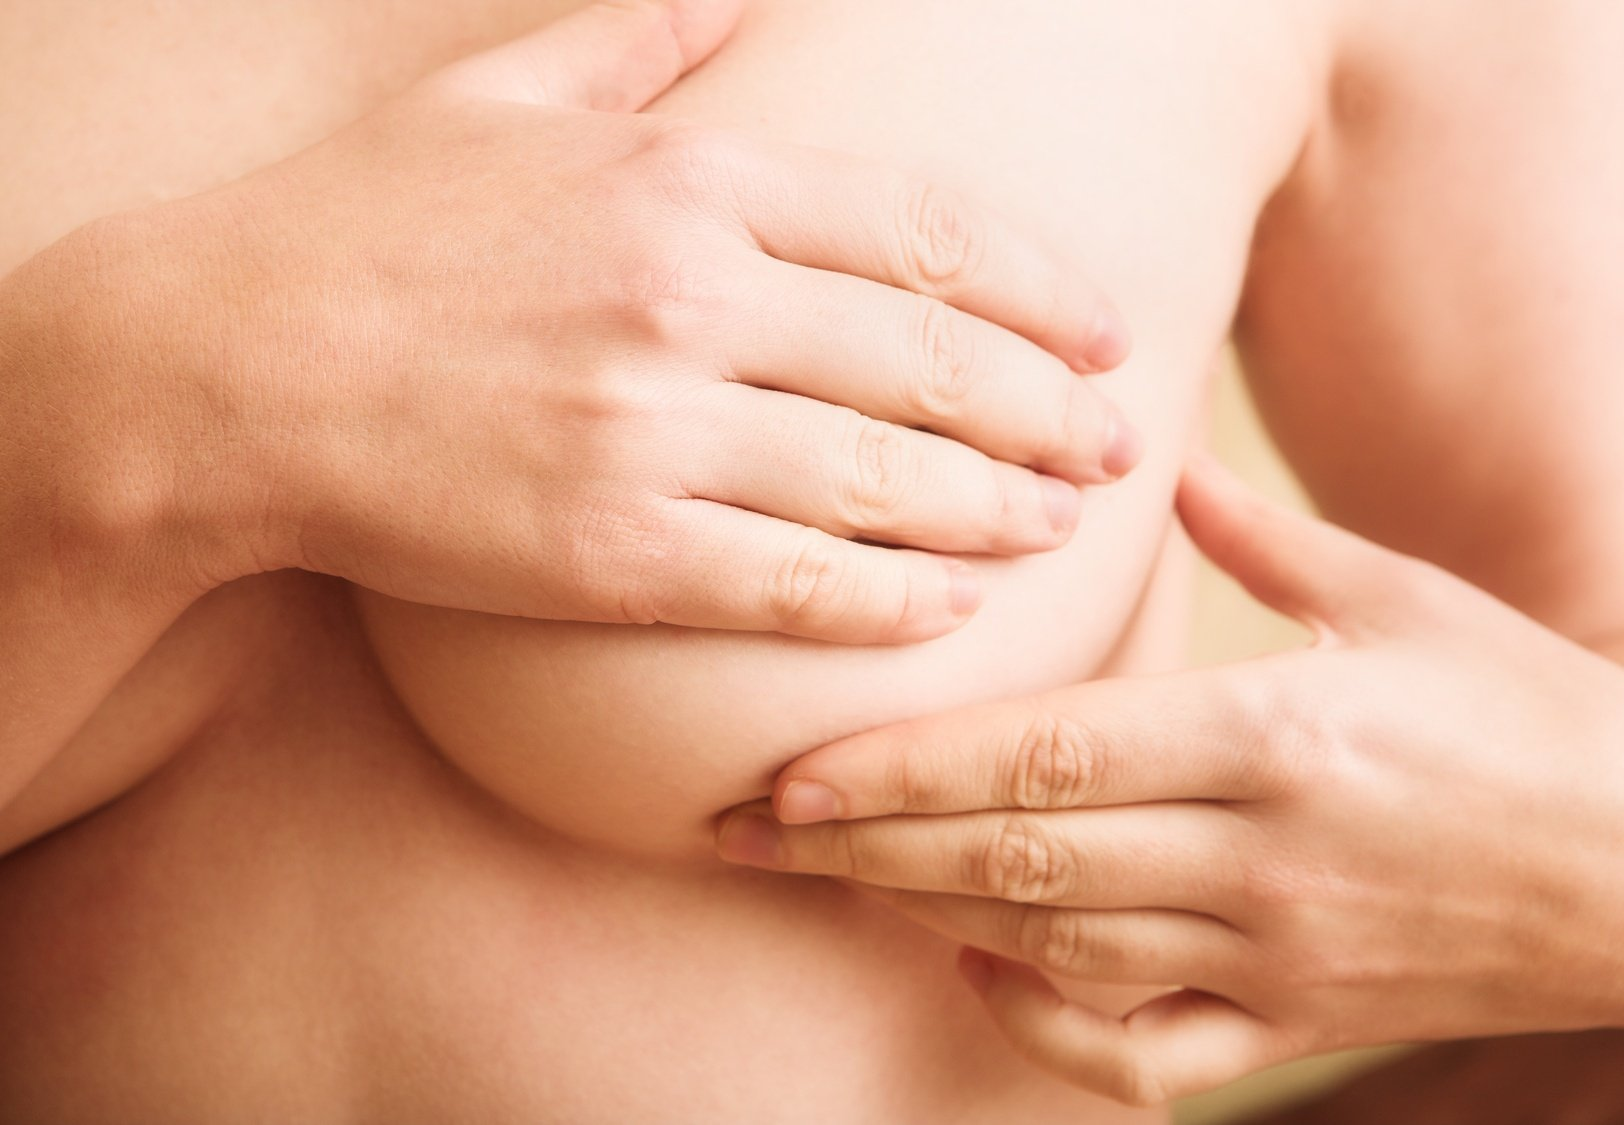 Breast examination for Cancer